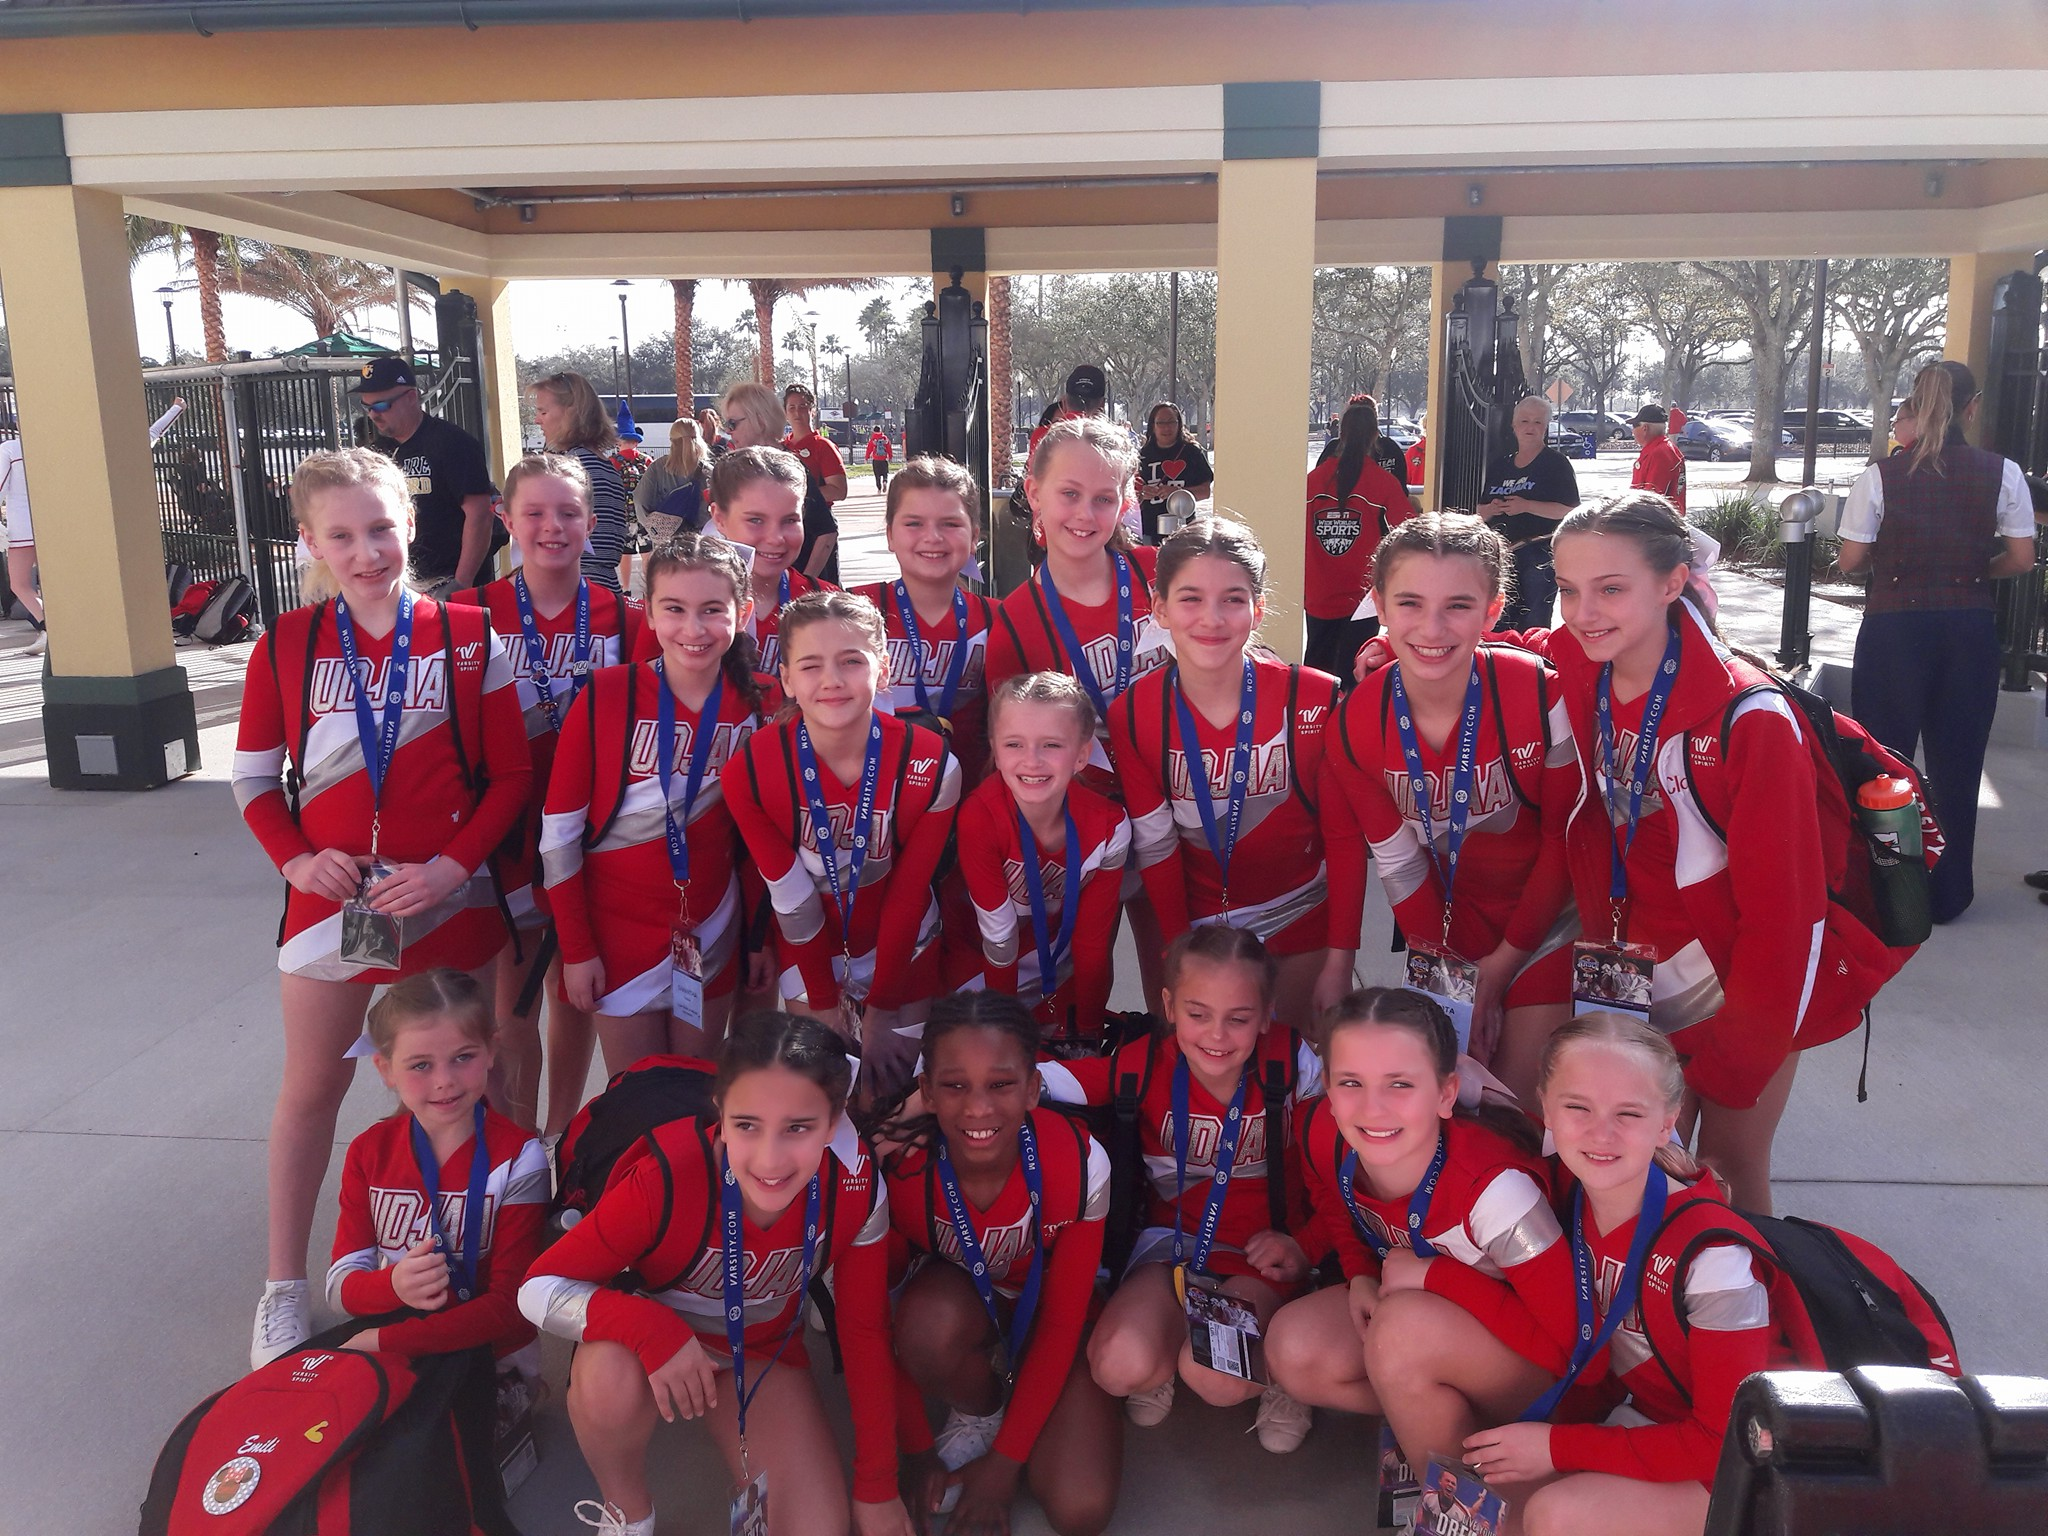 Girls 10U Place 2nd at Nationals in Orlando